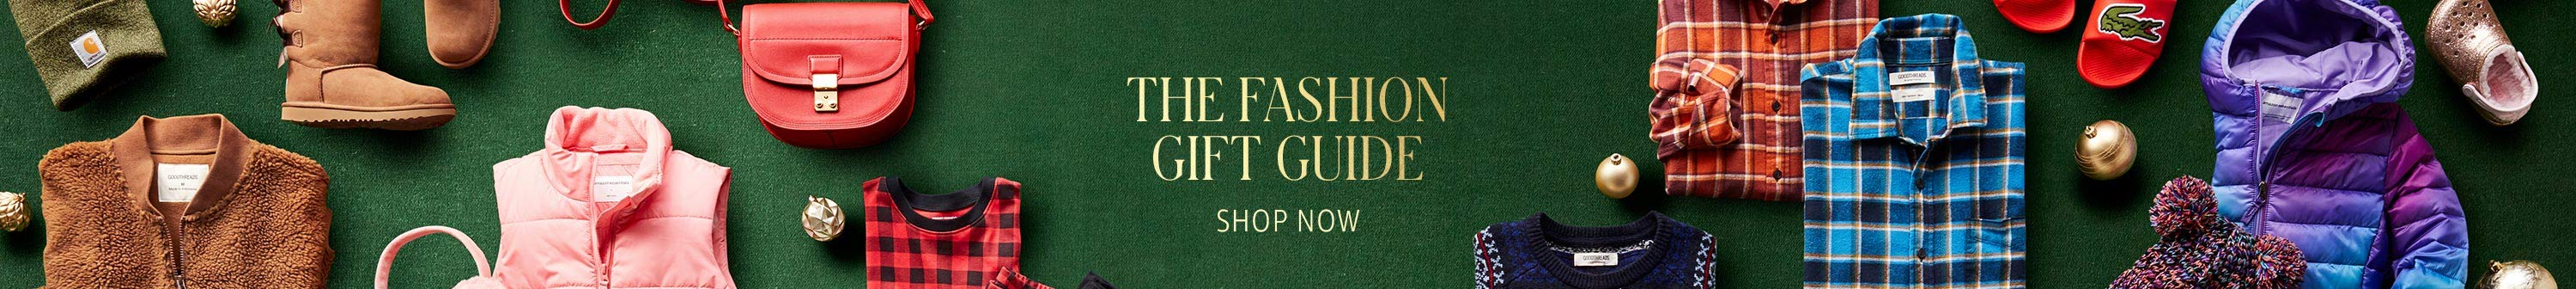 Amazon Fashion Gift Guide, Go back